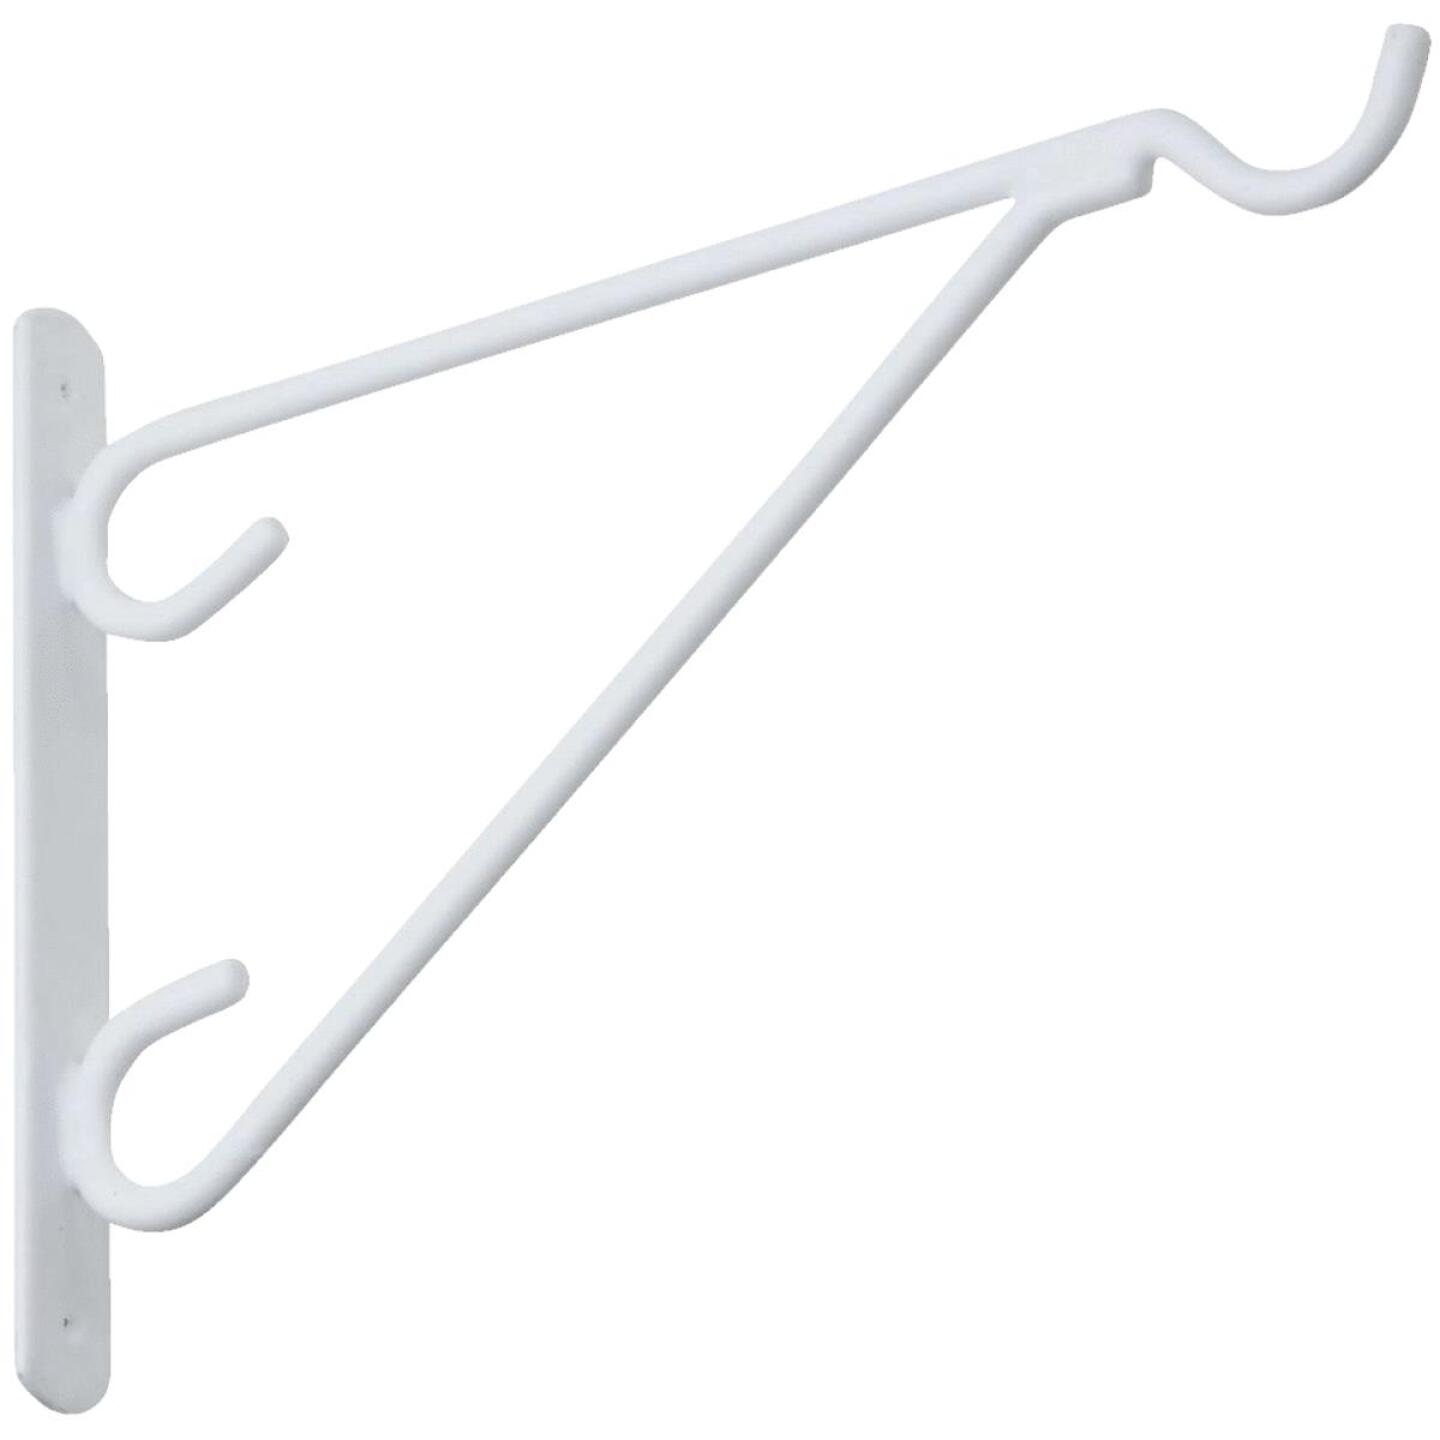 National 12 In. White Vinyl-Coated Steel Plant Hanger Bracket Image 1